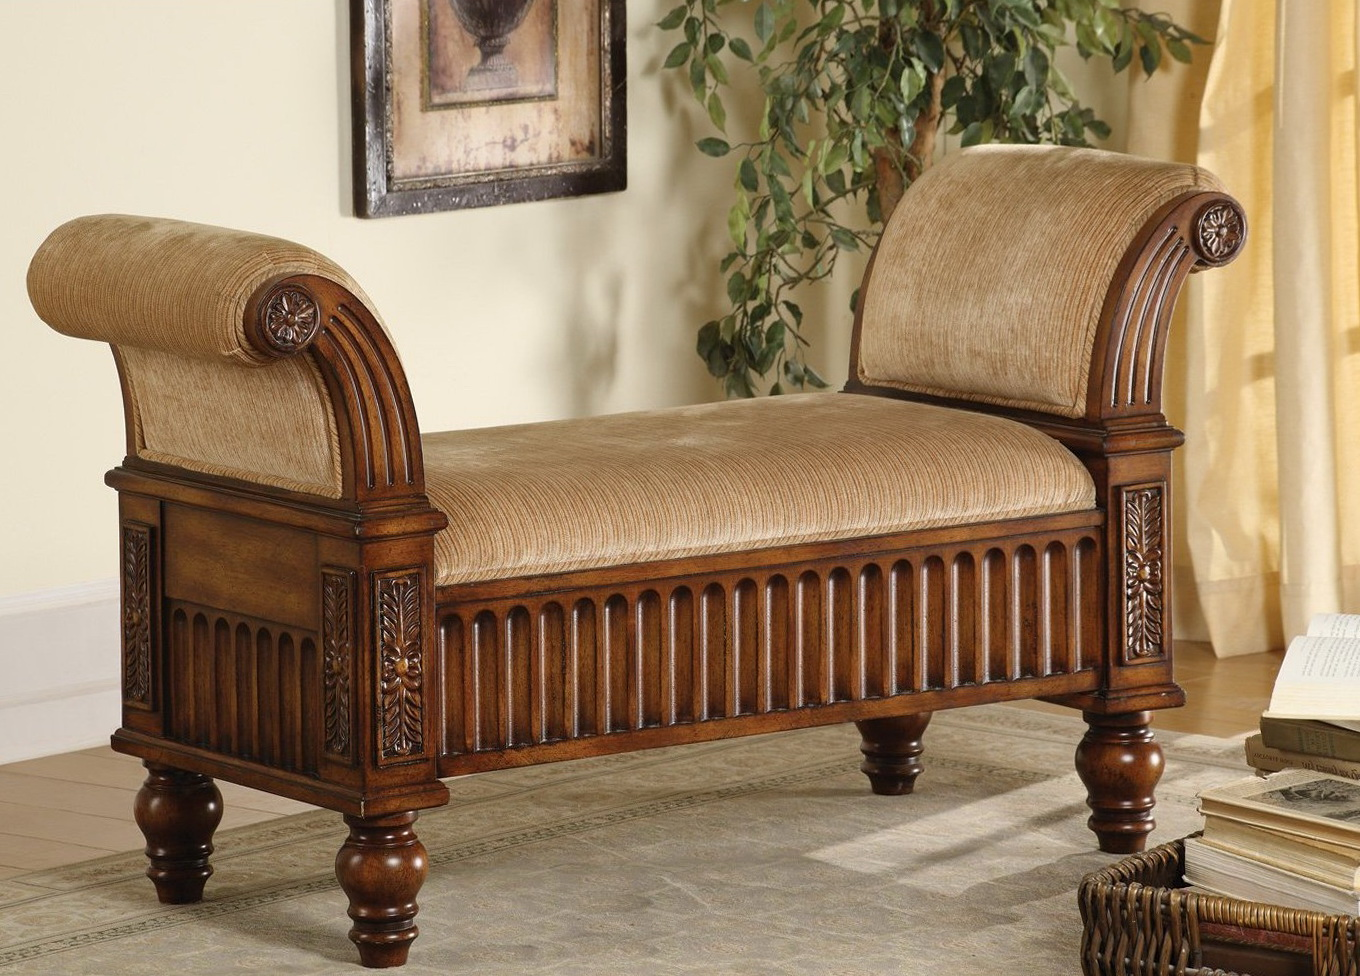 Upholstered Bench With Rolled Arms Home Design Ideas